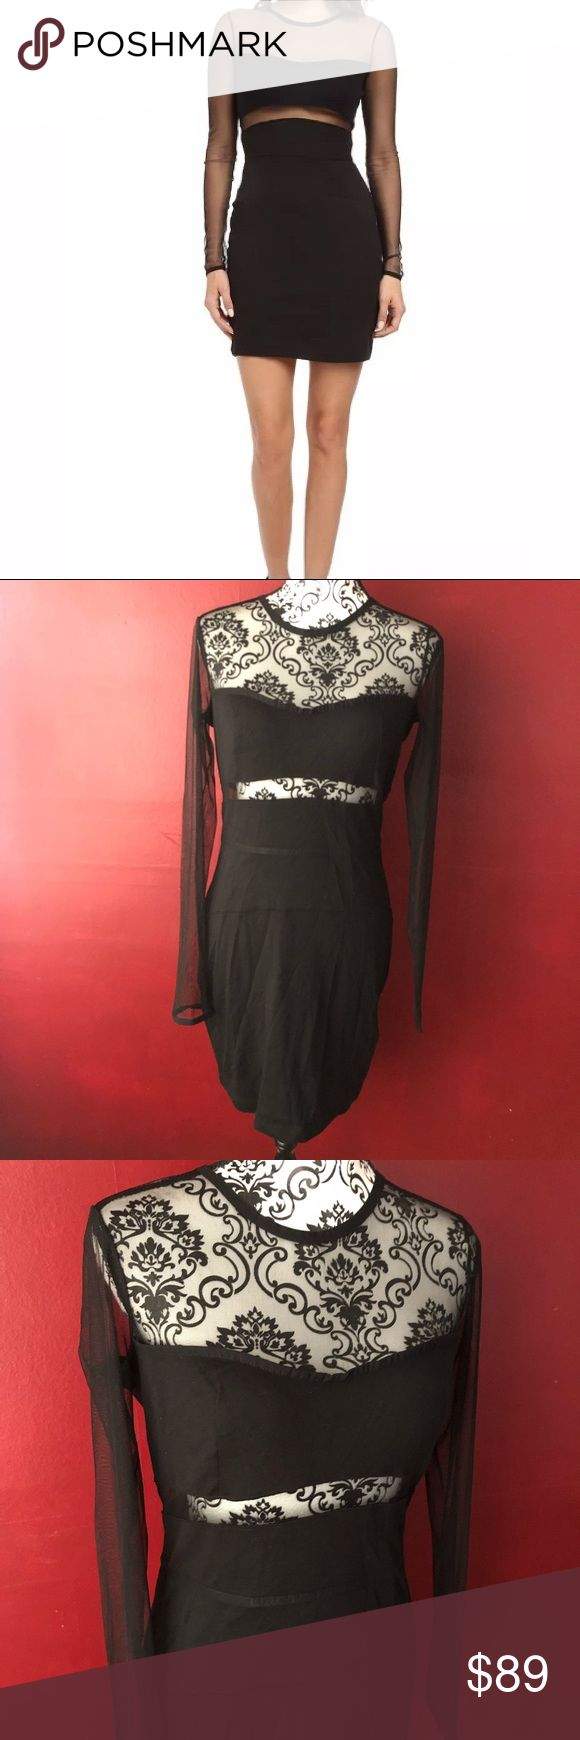 """Diesel Dress Large Black Club Sexy Mesh Stretch Seriously awesome body on/ stretch illusion mesh dress by diesel.  Dress is stretchy, measurements below are unstretched.  A showstopper for sure!  Pit to pit: 19"""" Waist flat:14.75"""" Length: 35.5"""" Diesel Dresses"""